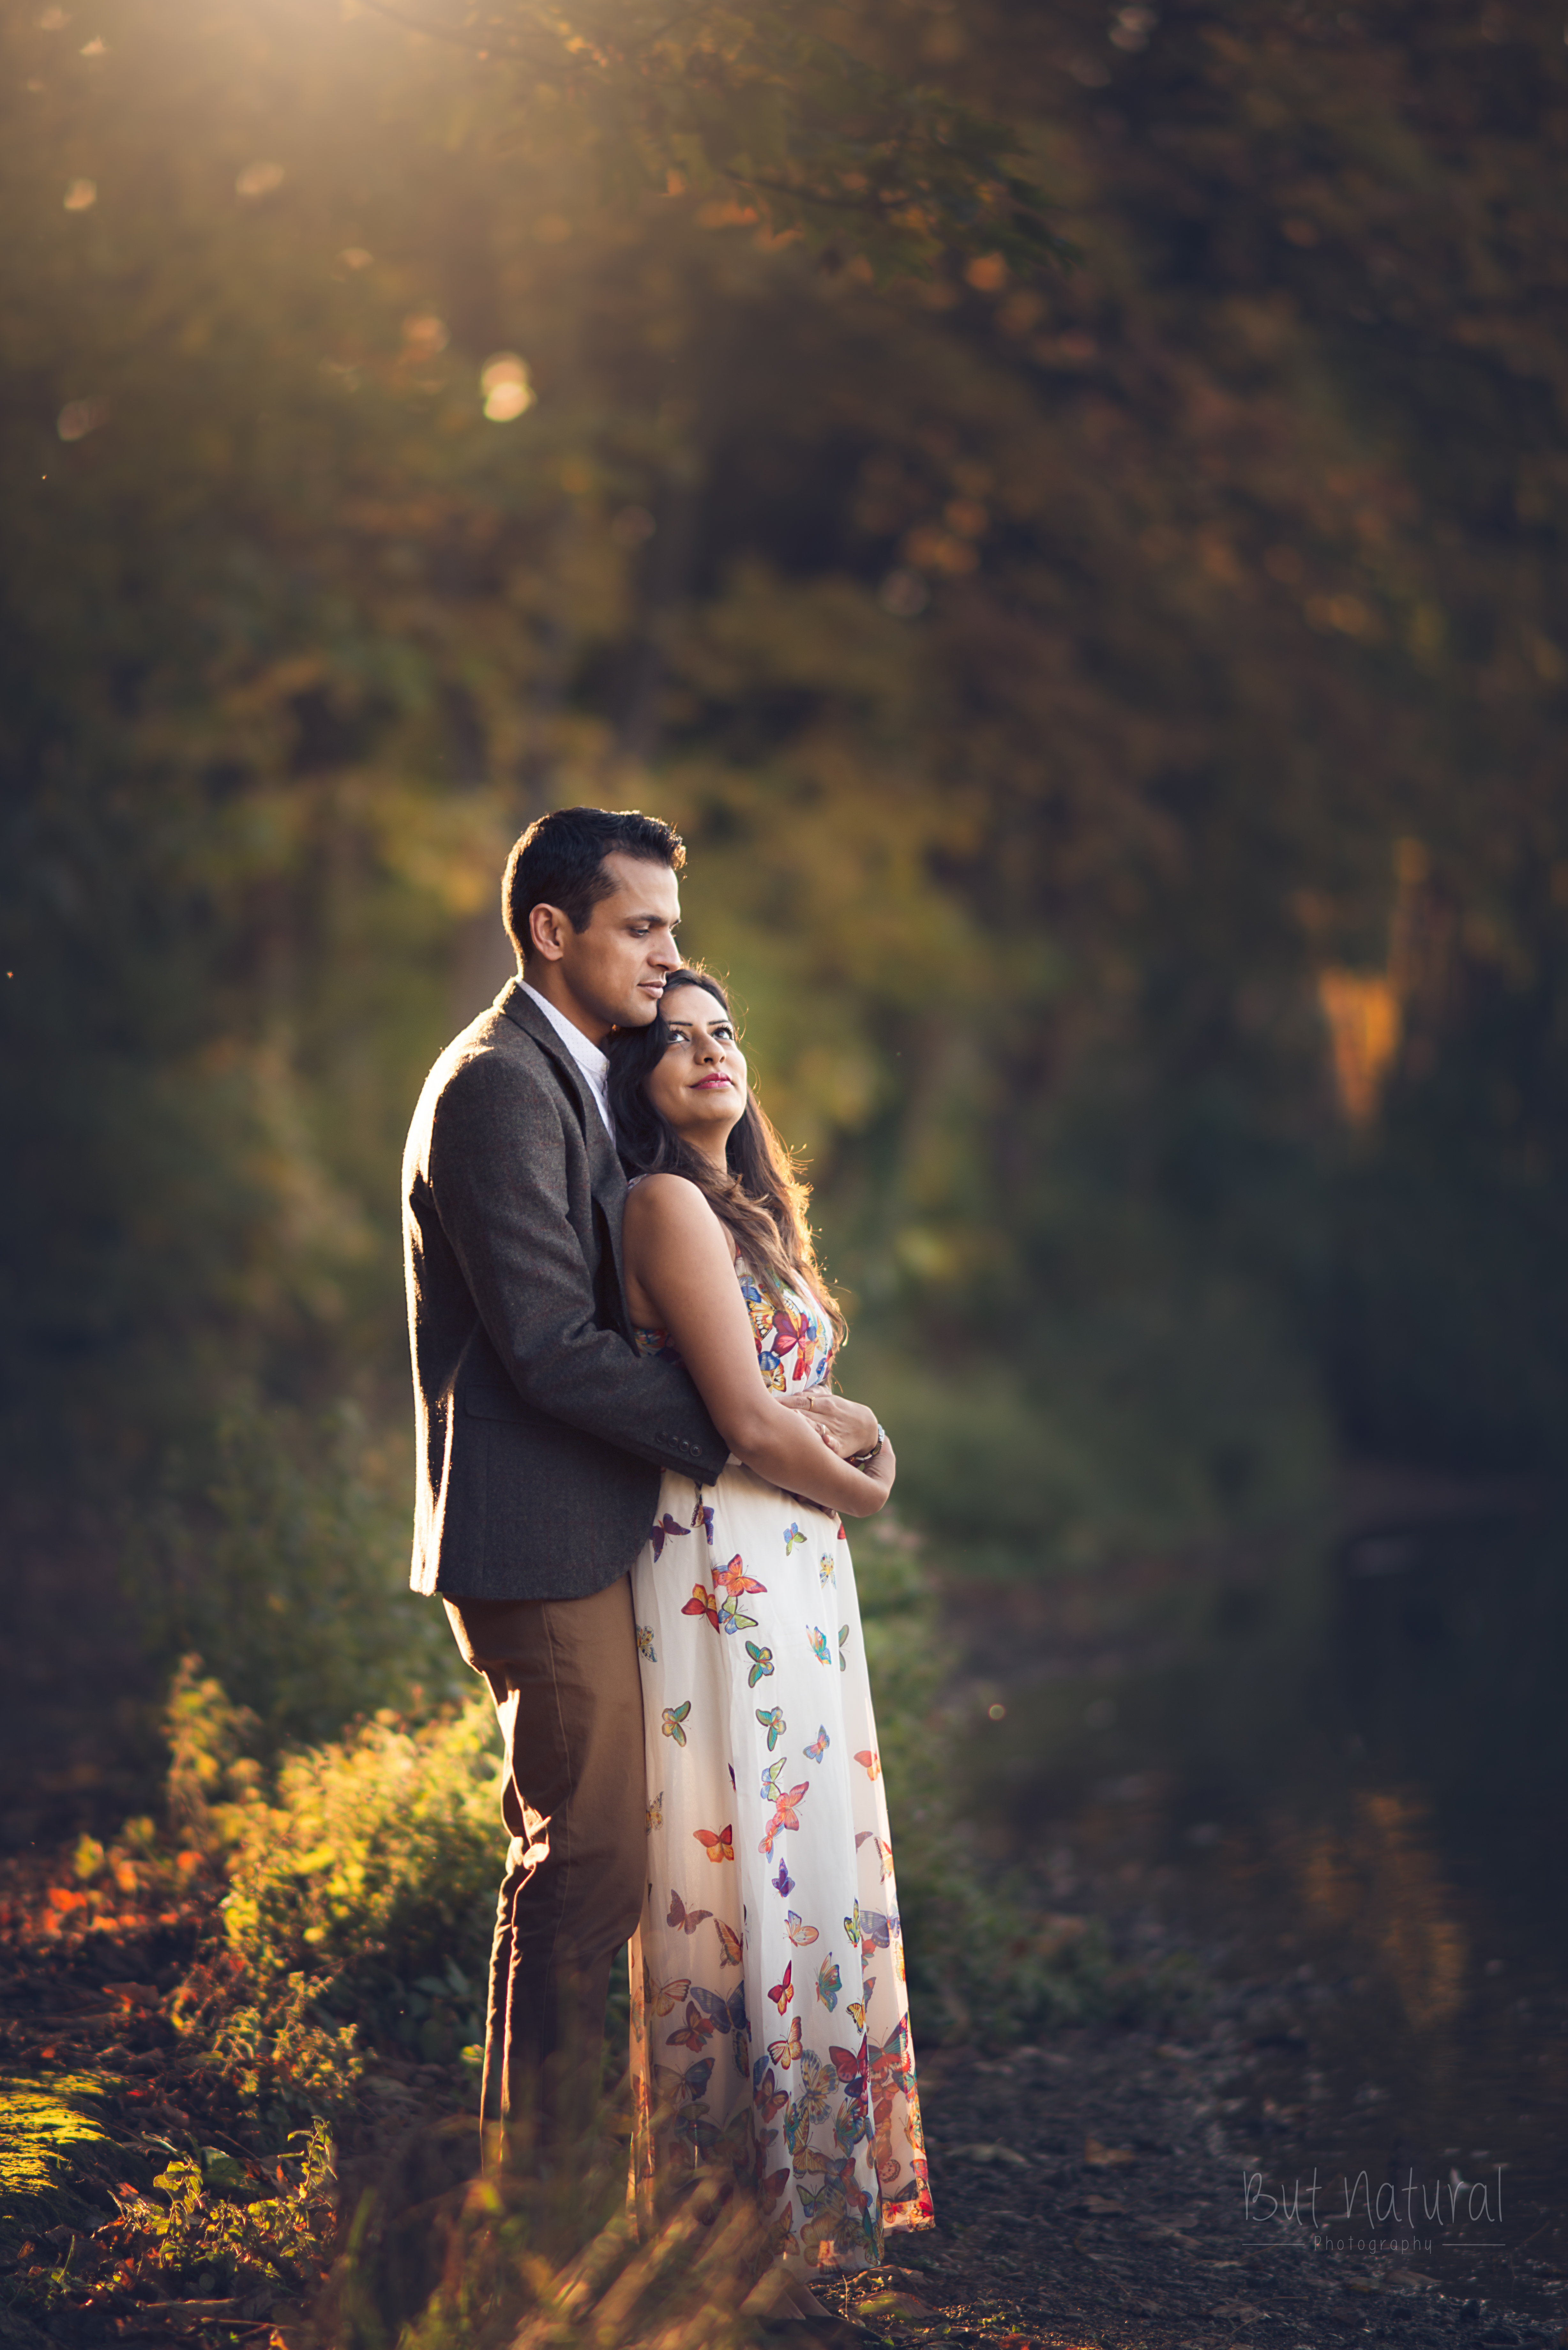 Couple photoshoot natural light in london kent uk but natural photography sujata